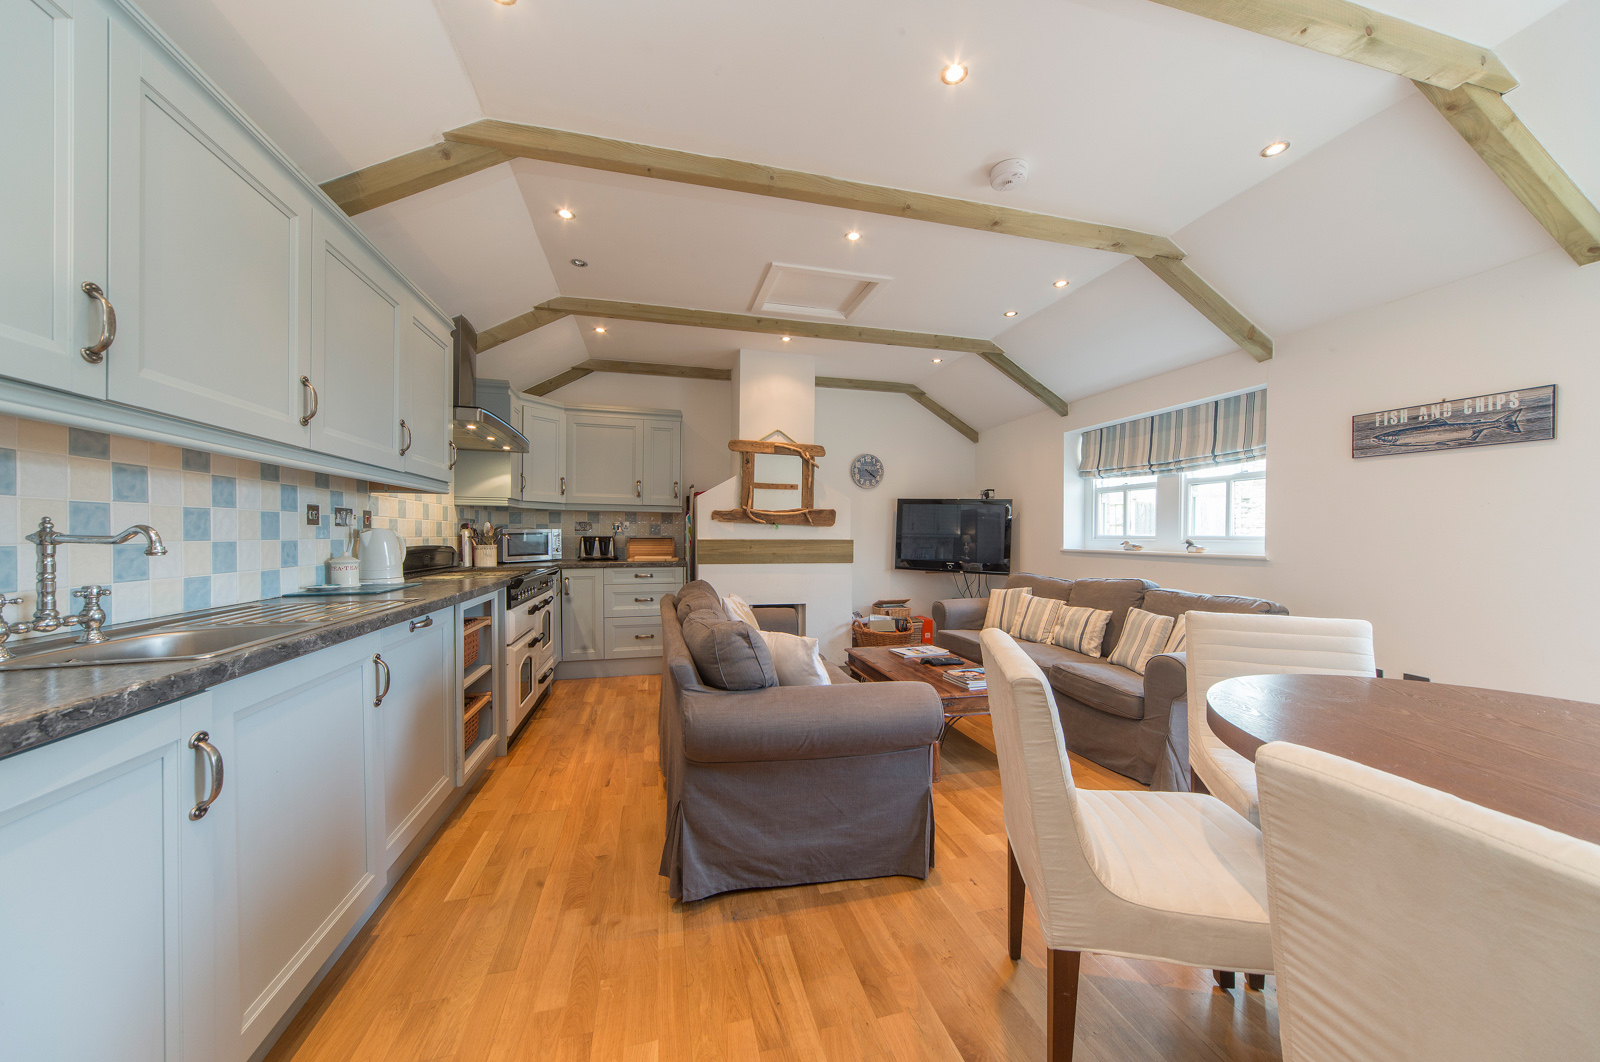 Kitchen, Lounge And Dining